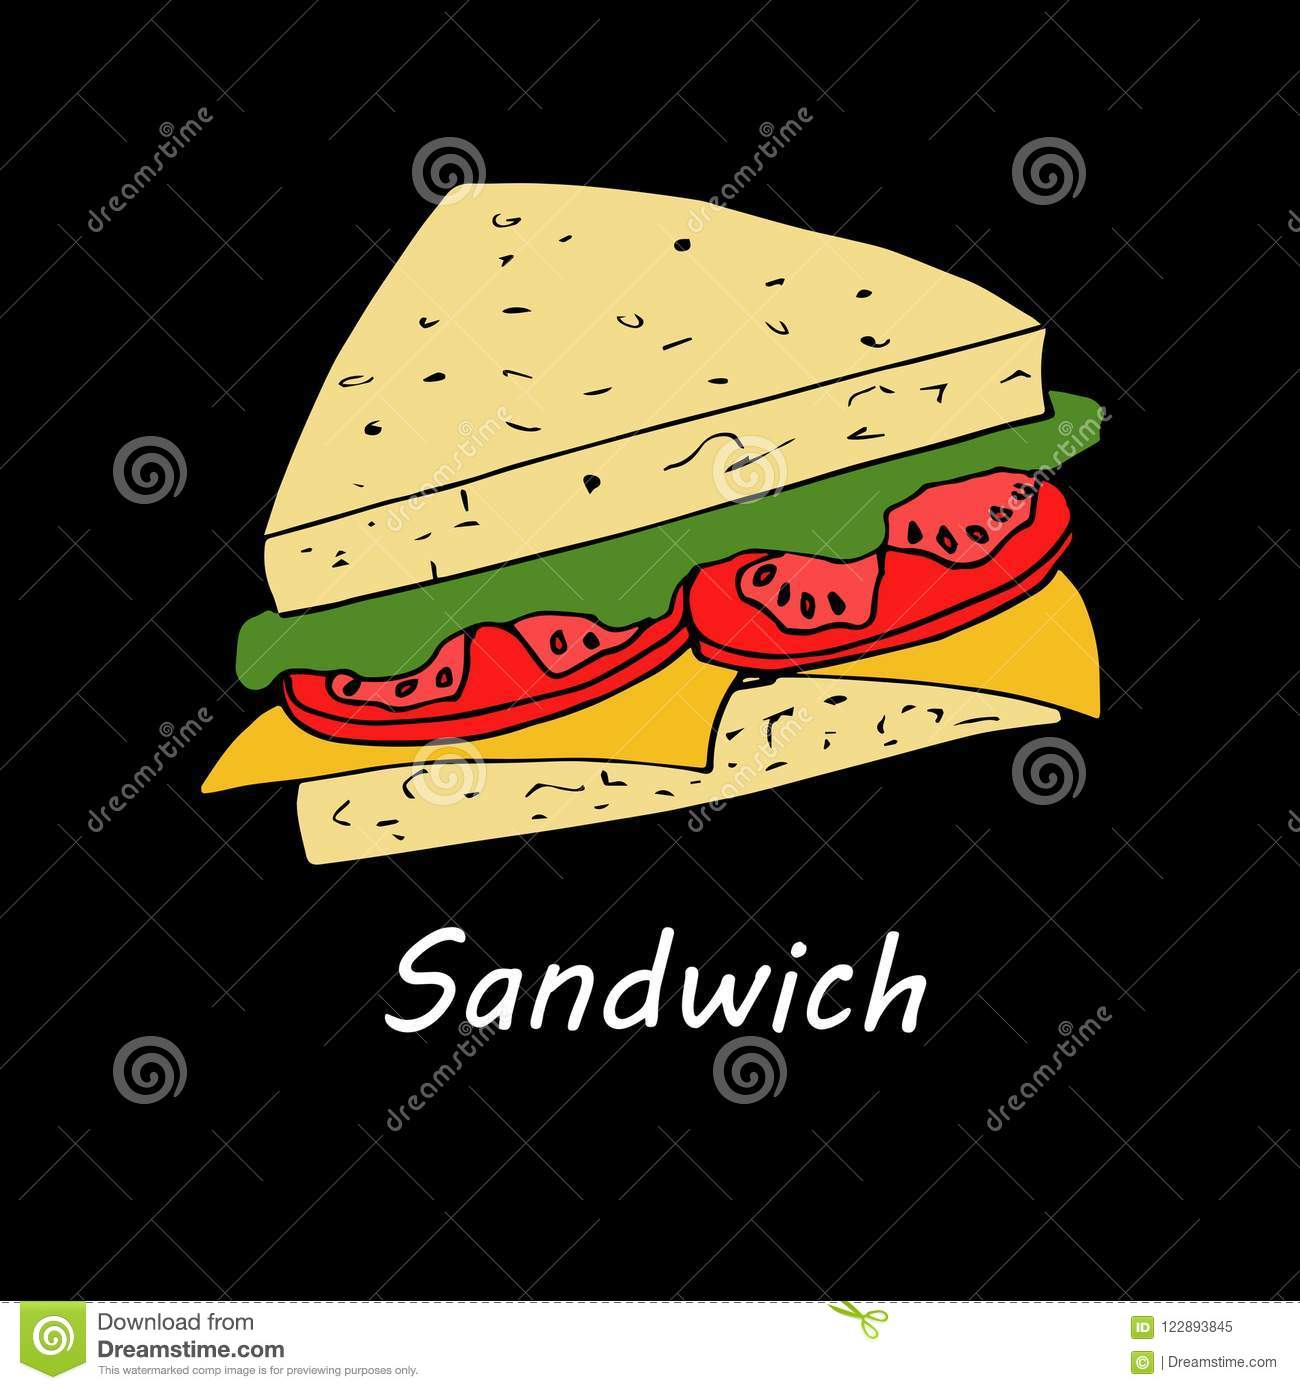 sandwich on black background illustration in cartoon style for menu